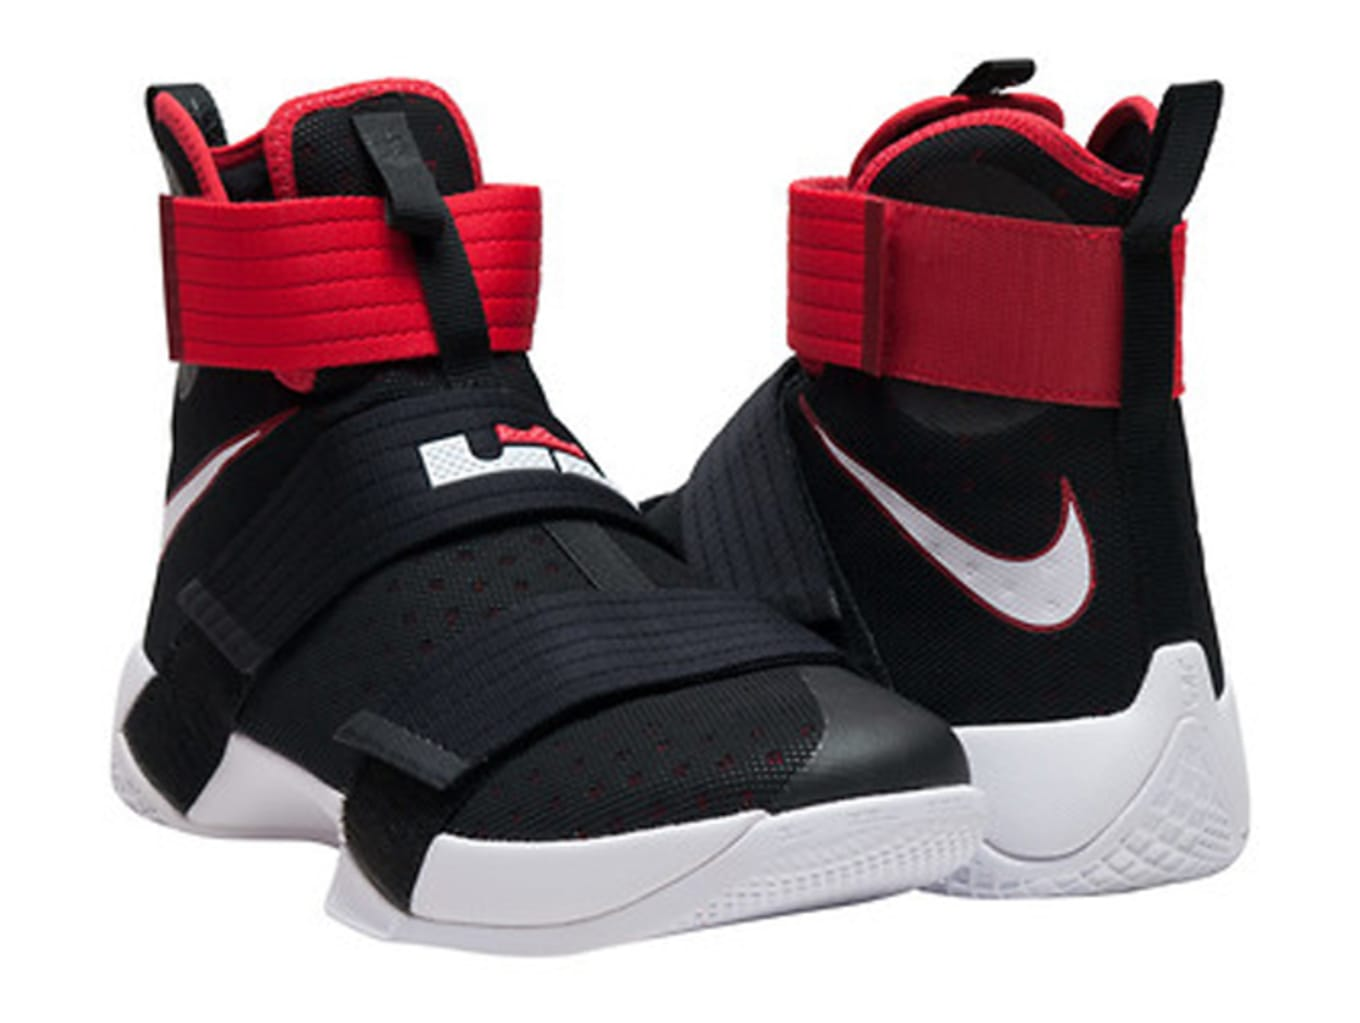 9477c0b6142 ... official store the nike lebron soldier 10 is available now. 7a88f eef32